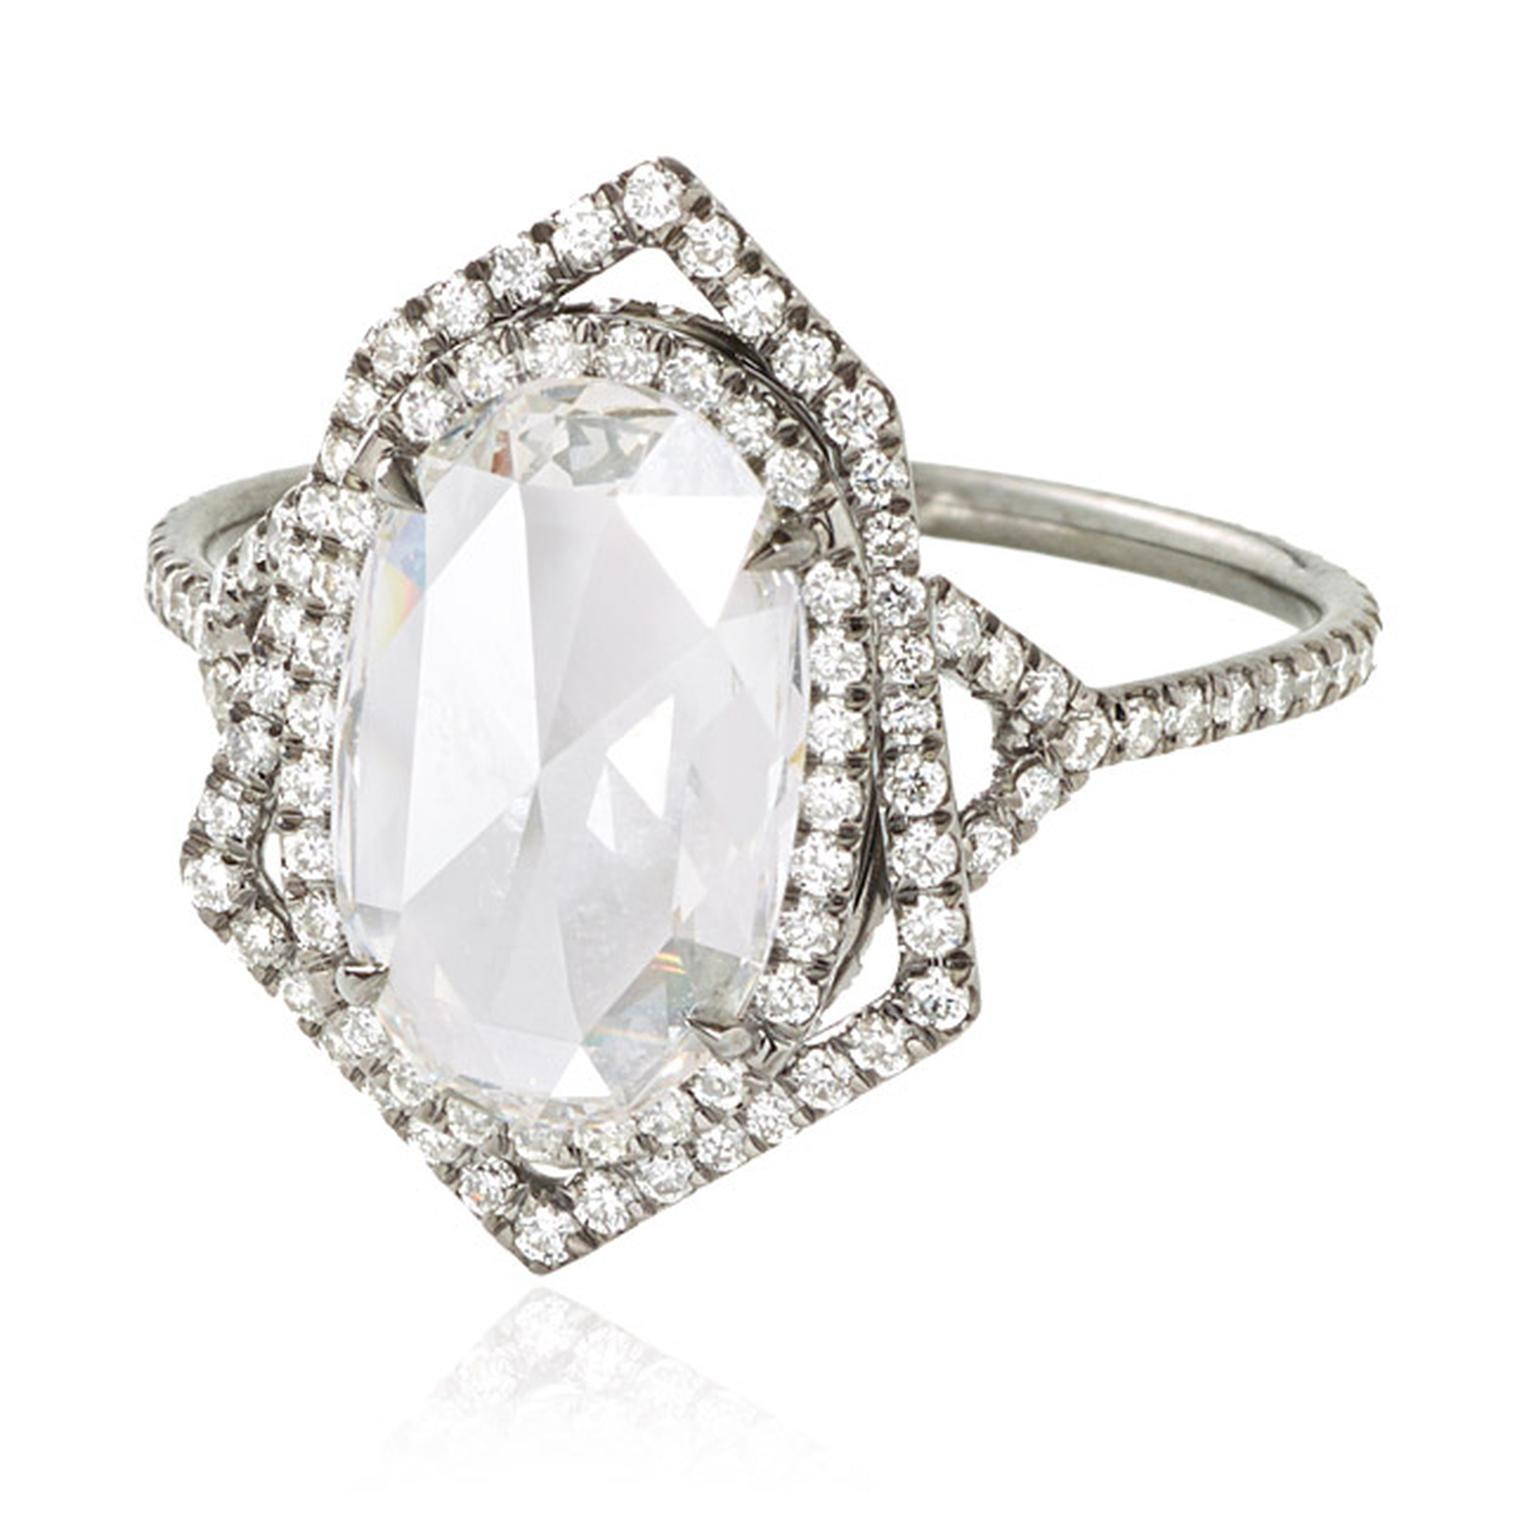 Monique Péan Mineraux collection diamond engagement ring in recycled oxidised platinum, set with an antique white oval rose-cut diamond and diamond pavé.